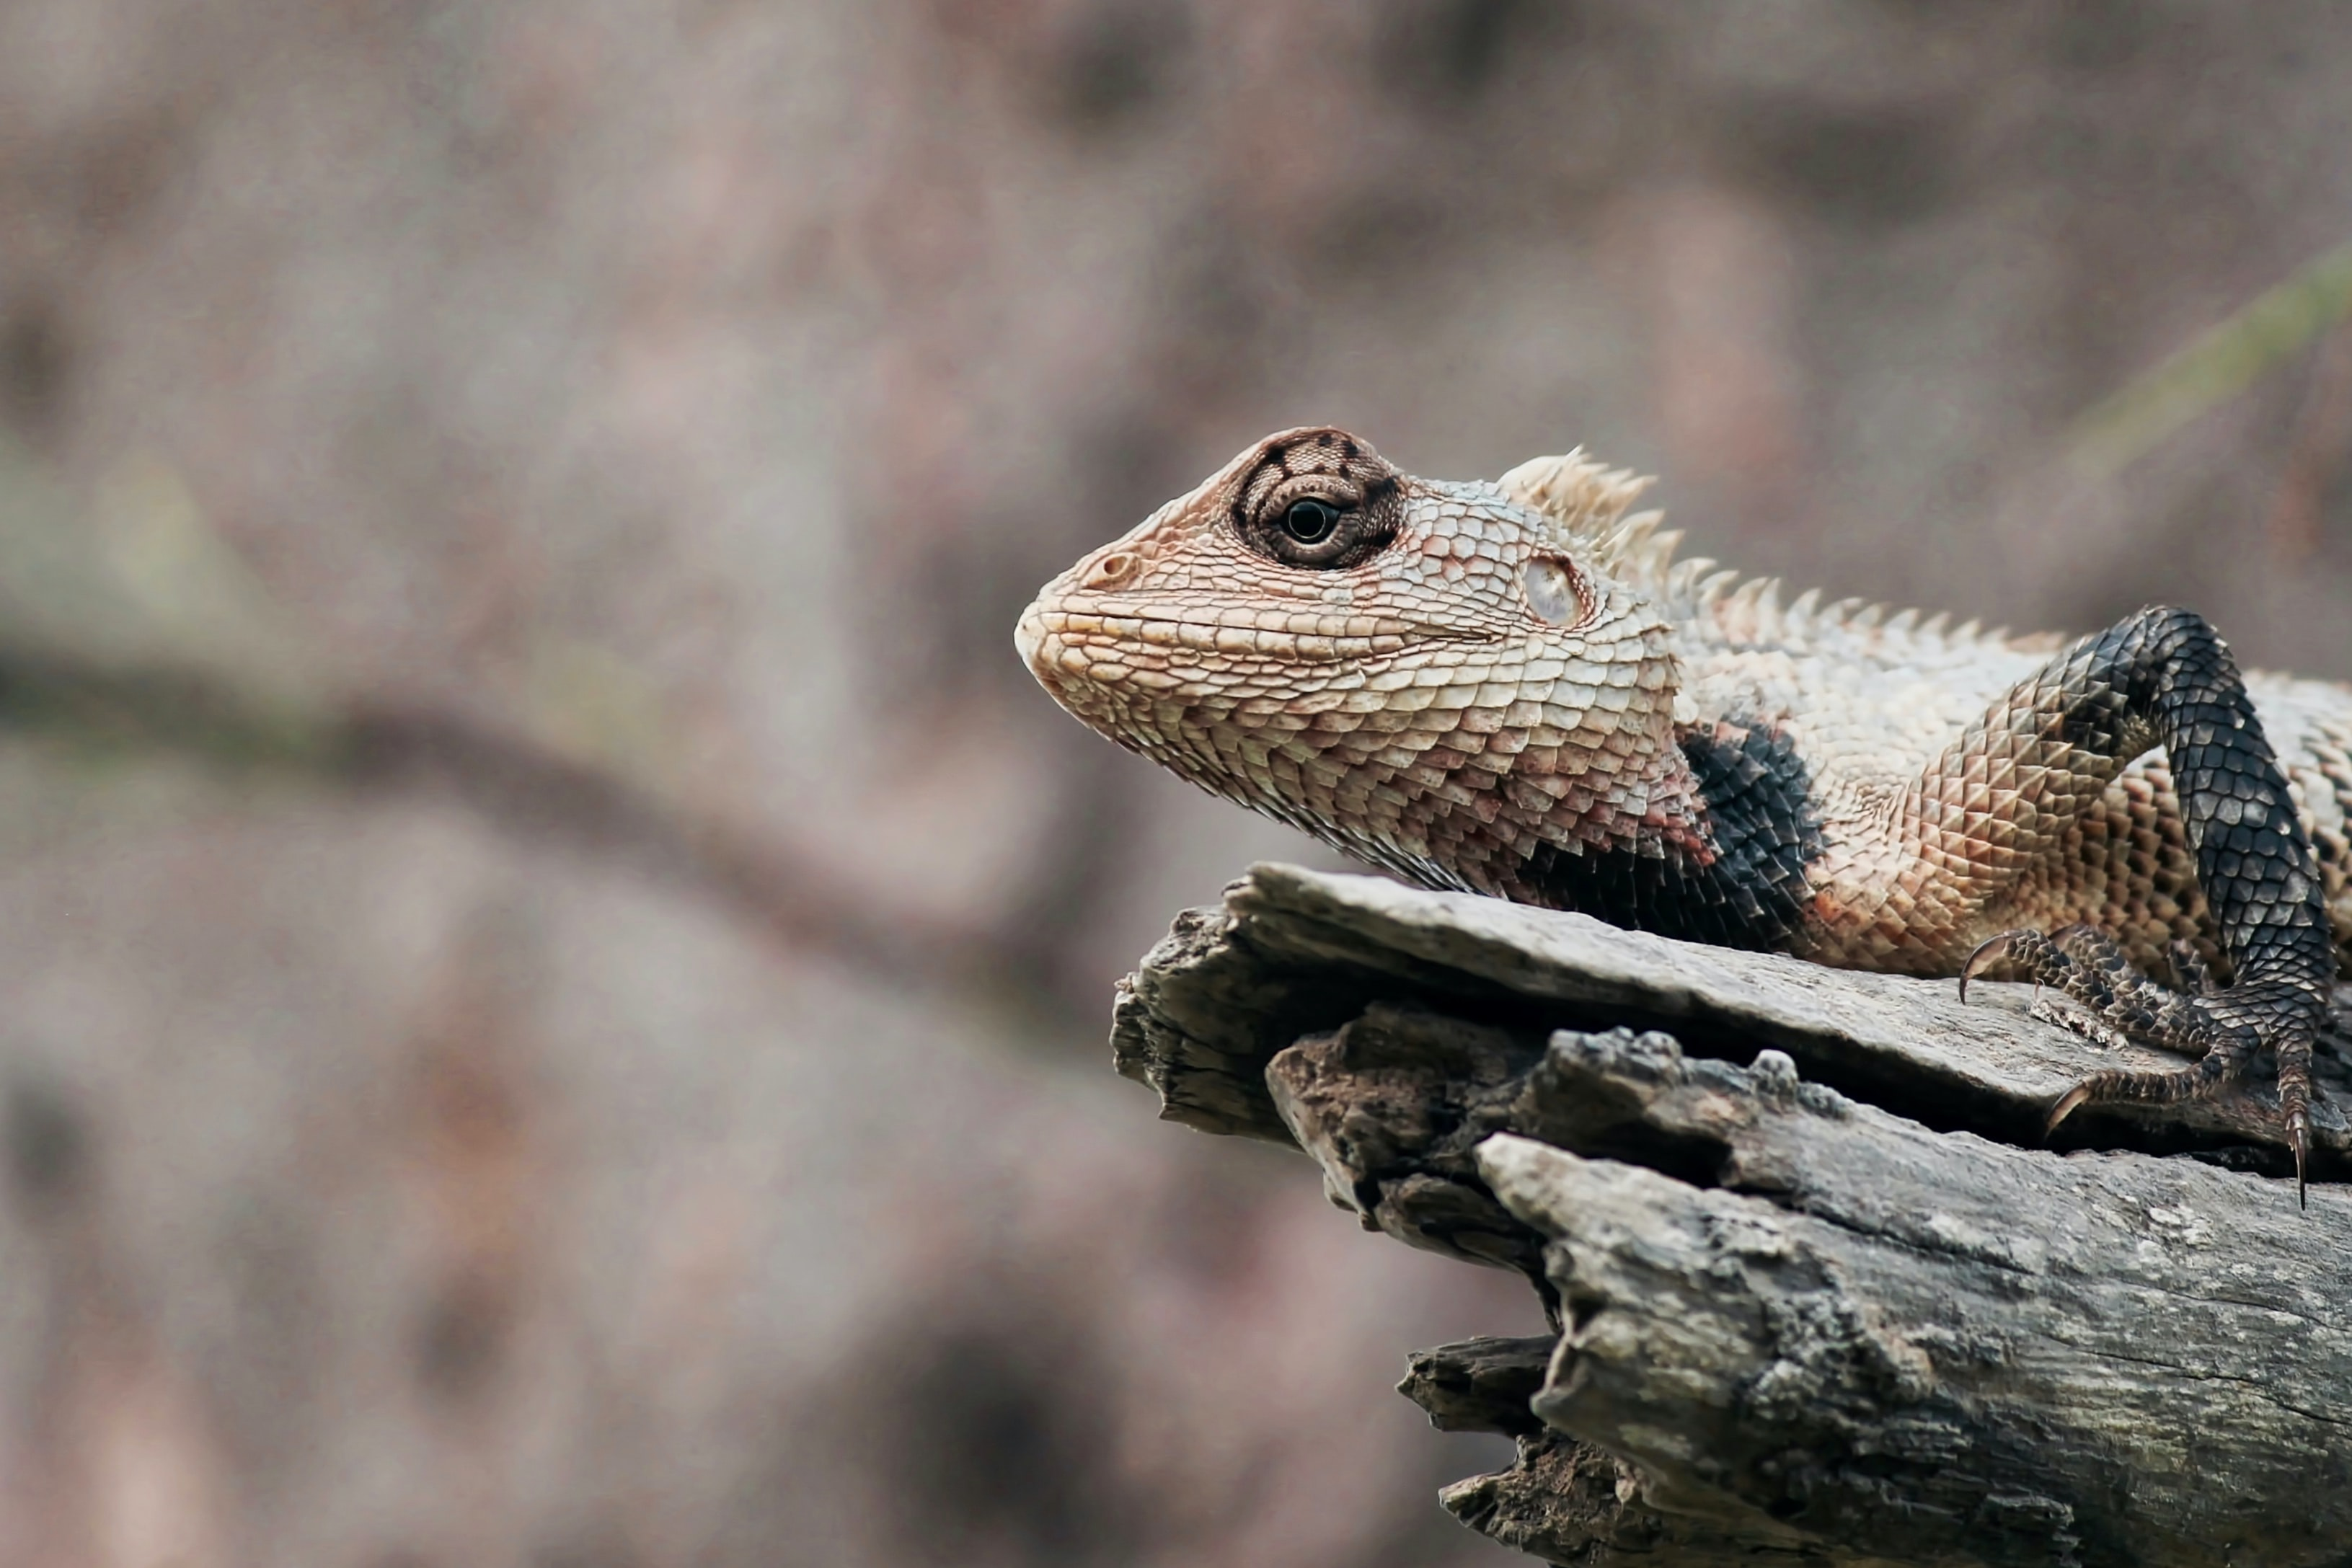 shallow focus photography of bearded dragon on tree branch